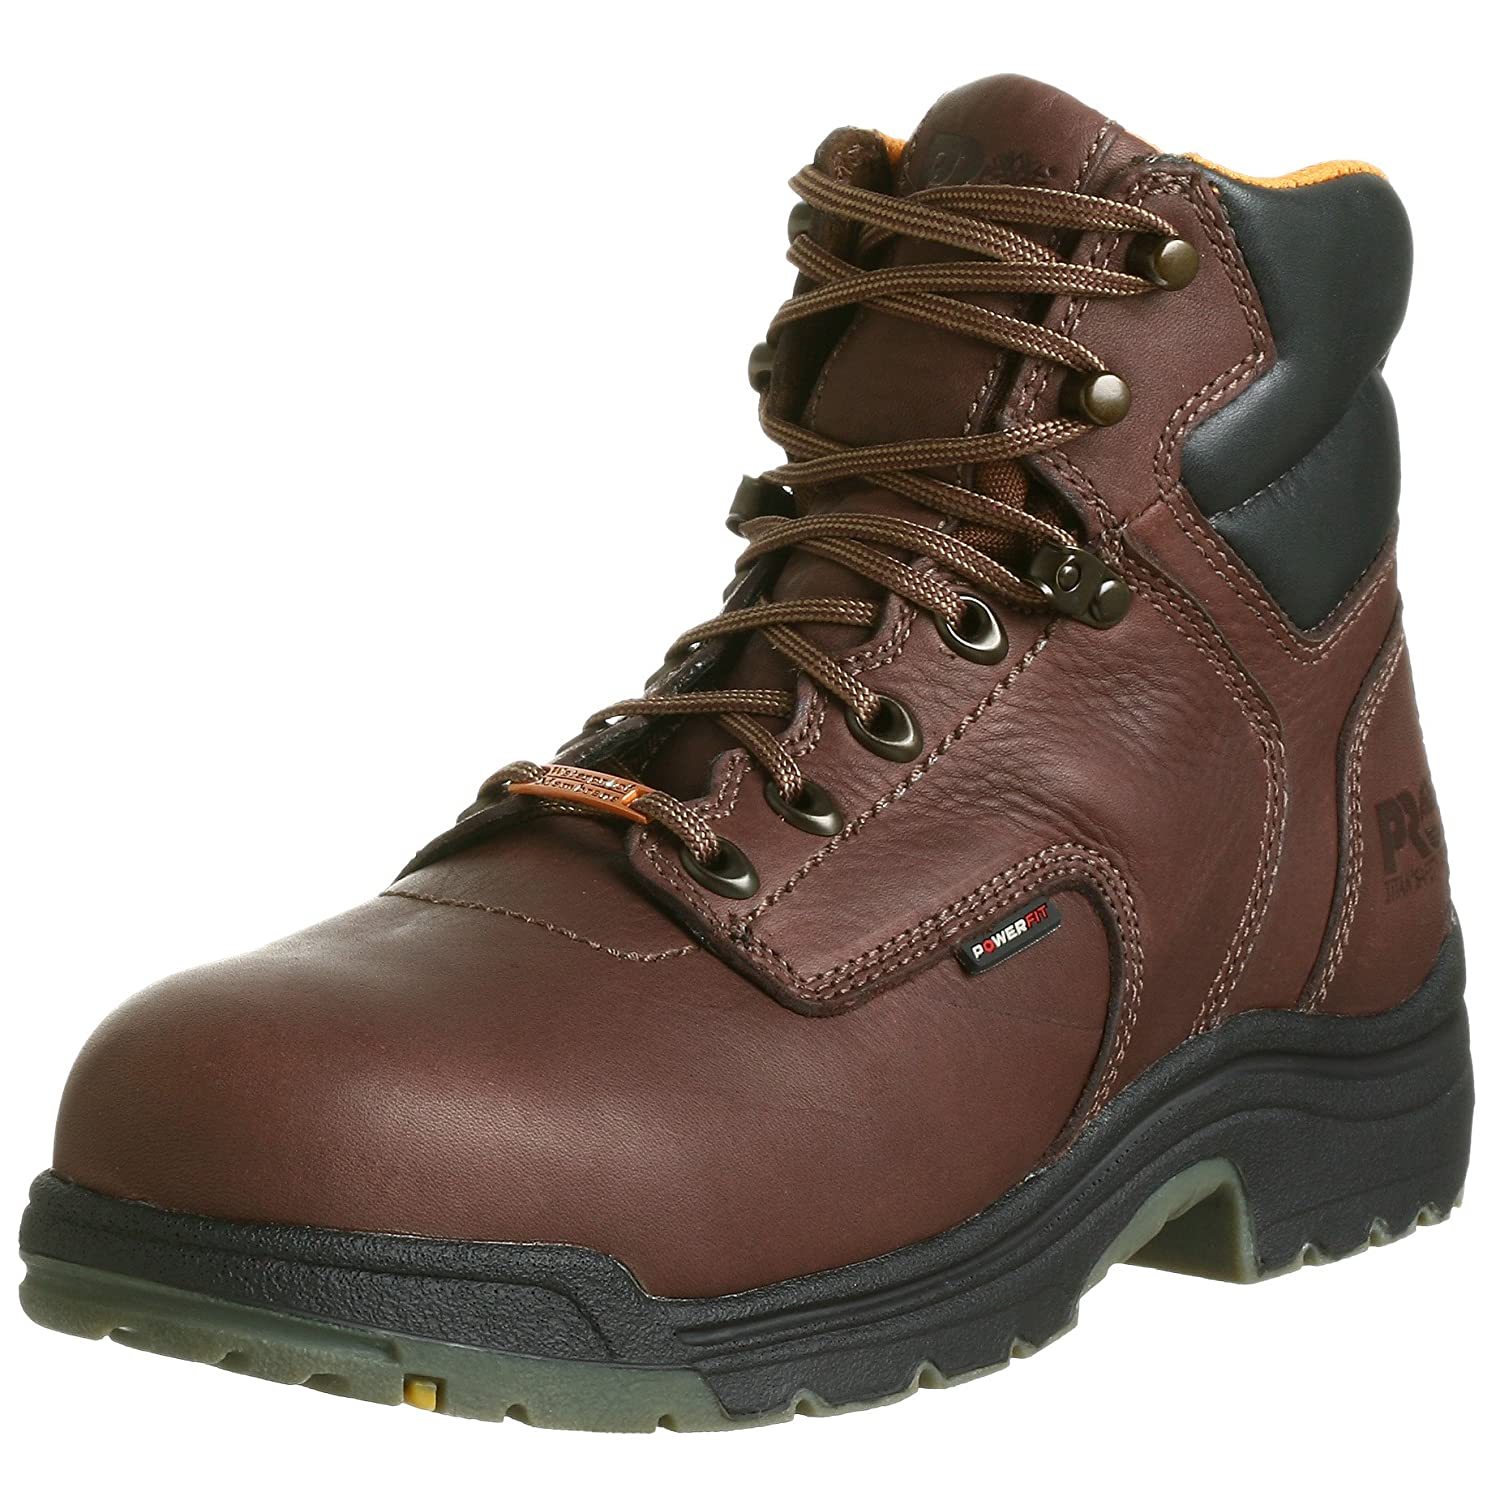 Timberland PRO at Amazon.com